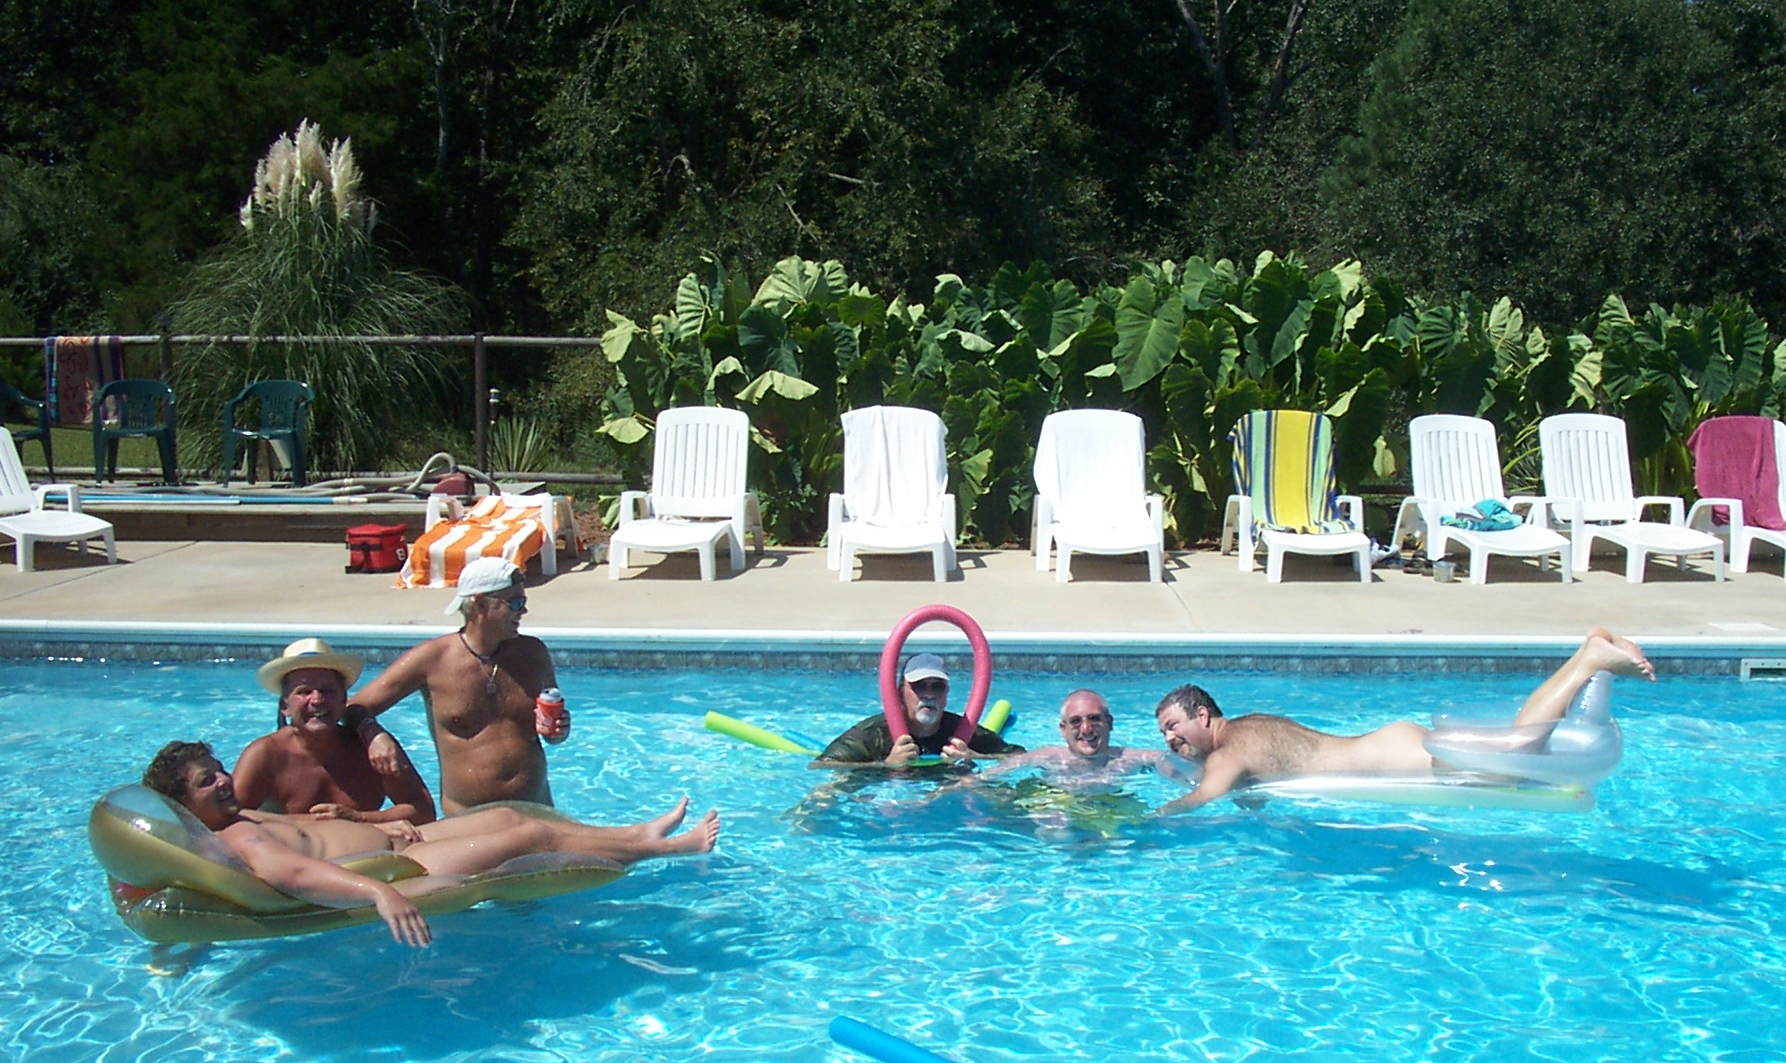 Gay nudist resort in north georgia